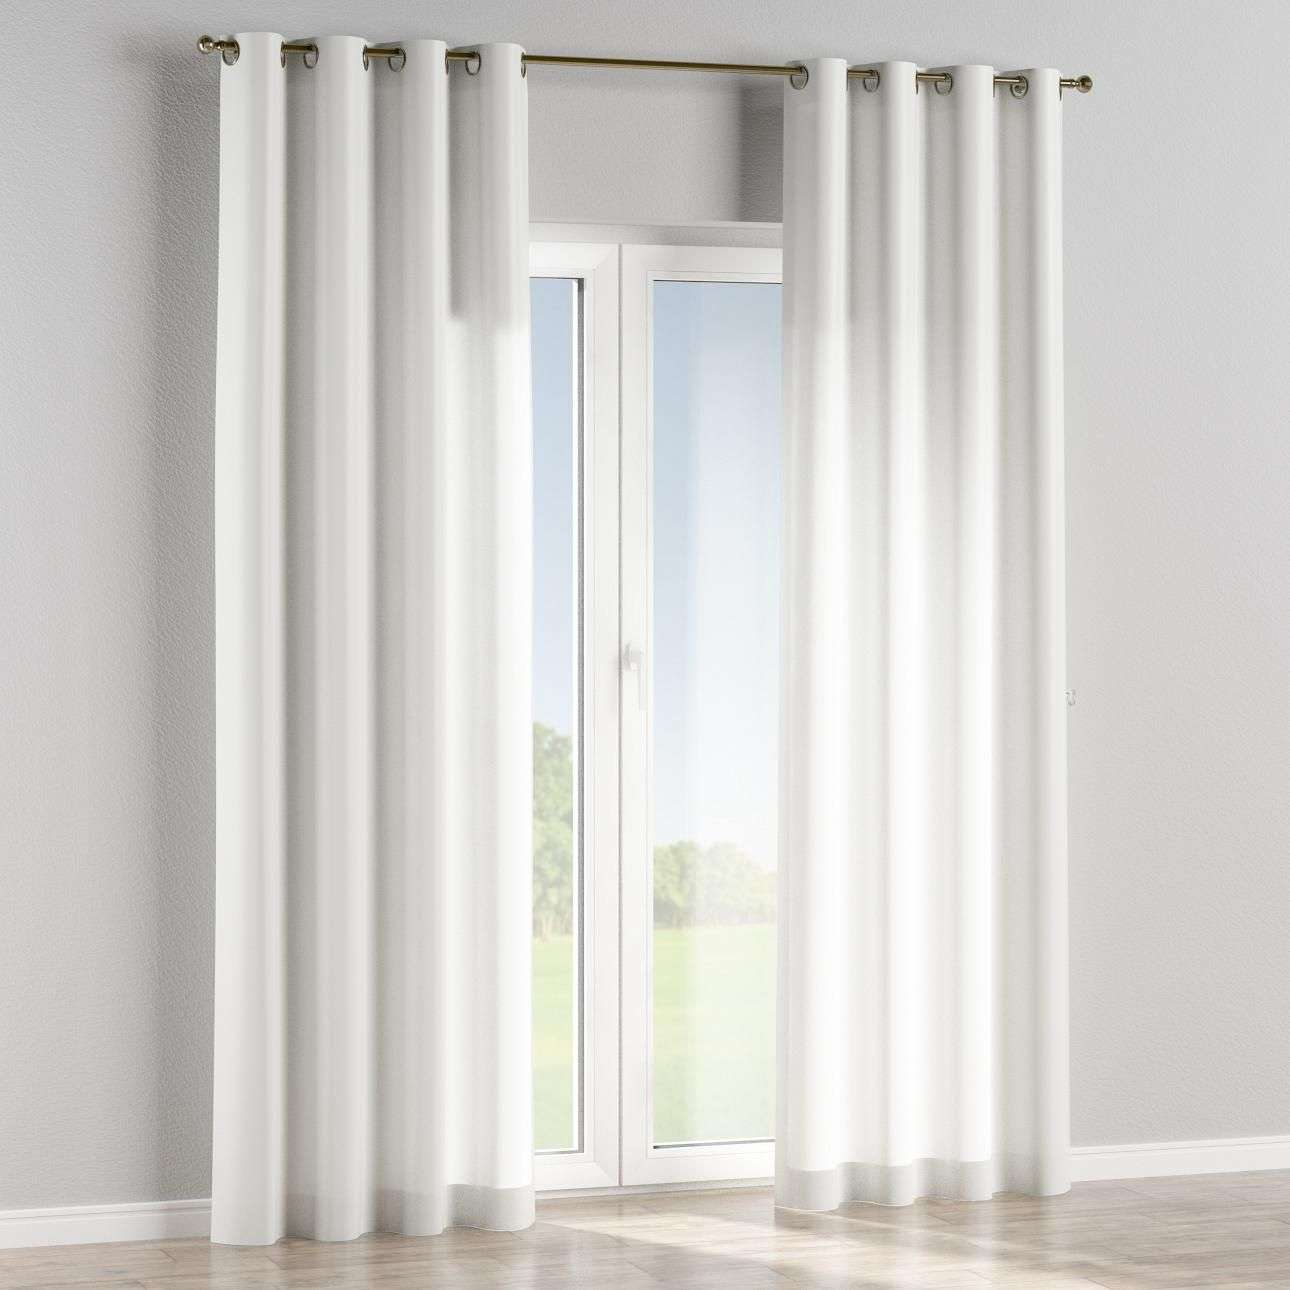 Eyelet curtains in collection Marina, fabric: 140-62